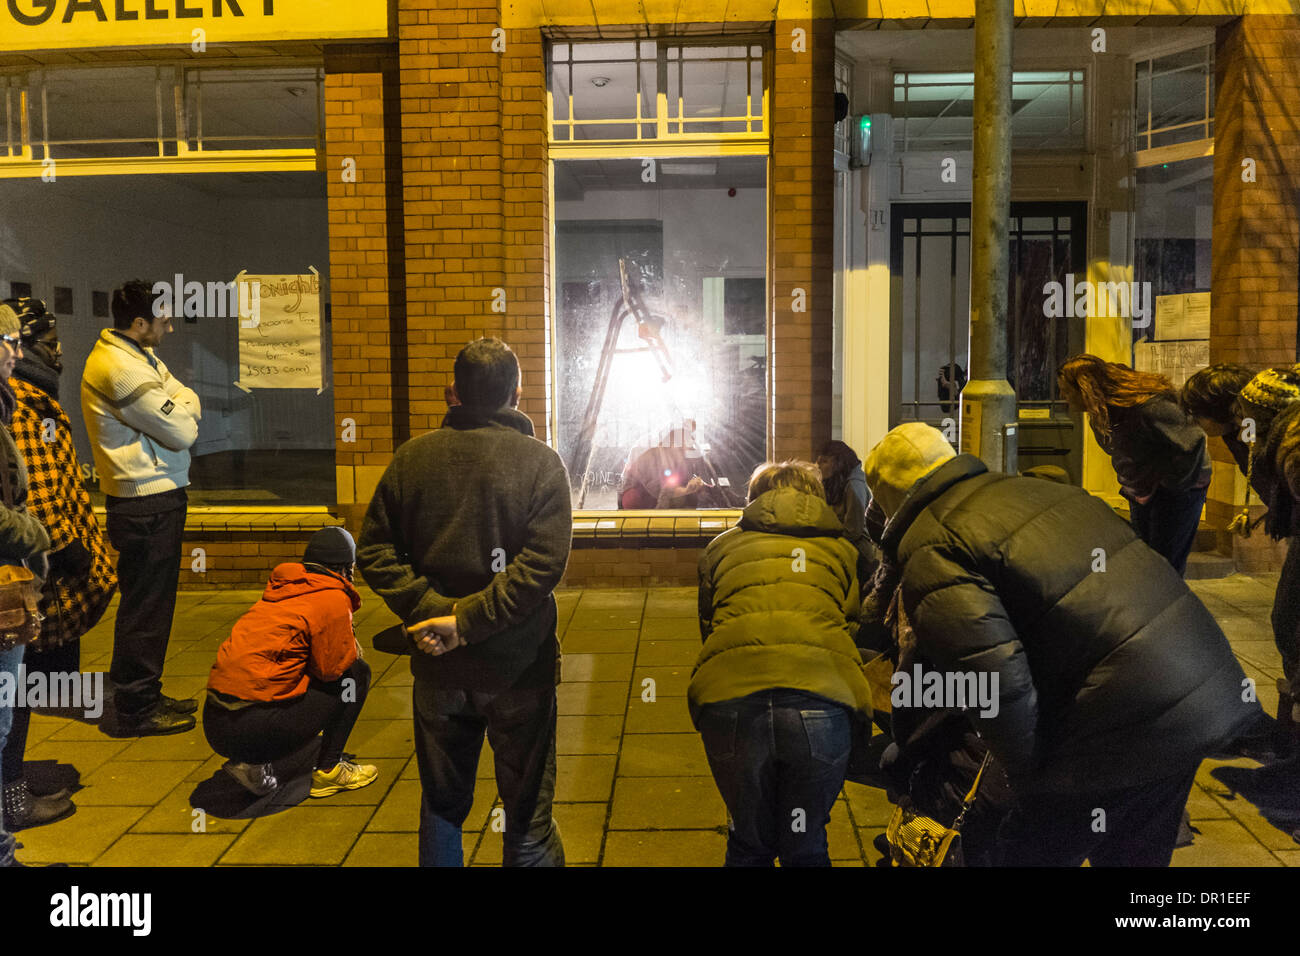 Performance Art - people outside watching a woman artist performing live art in a gallery UK - Stock Image